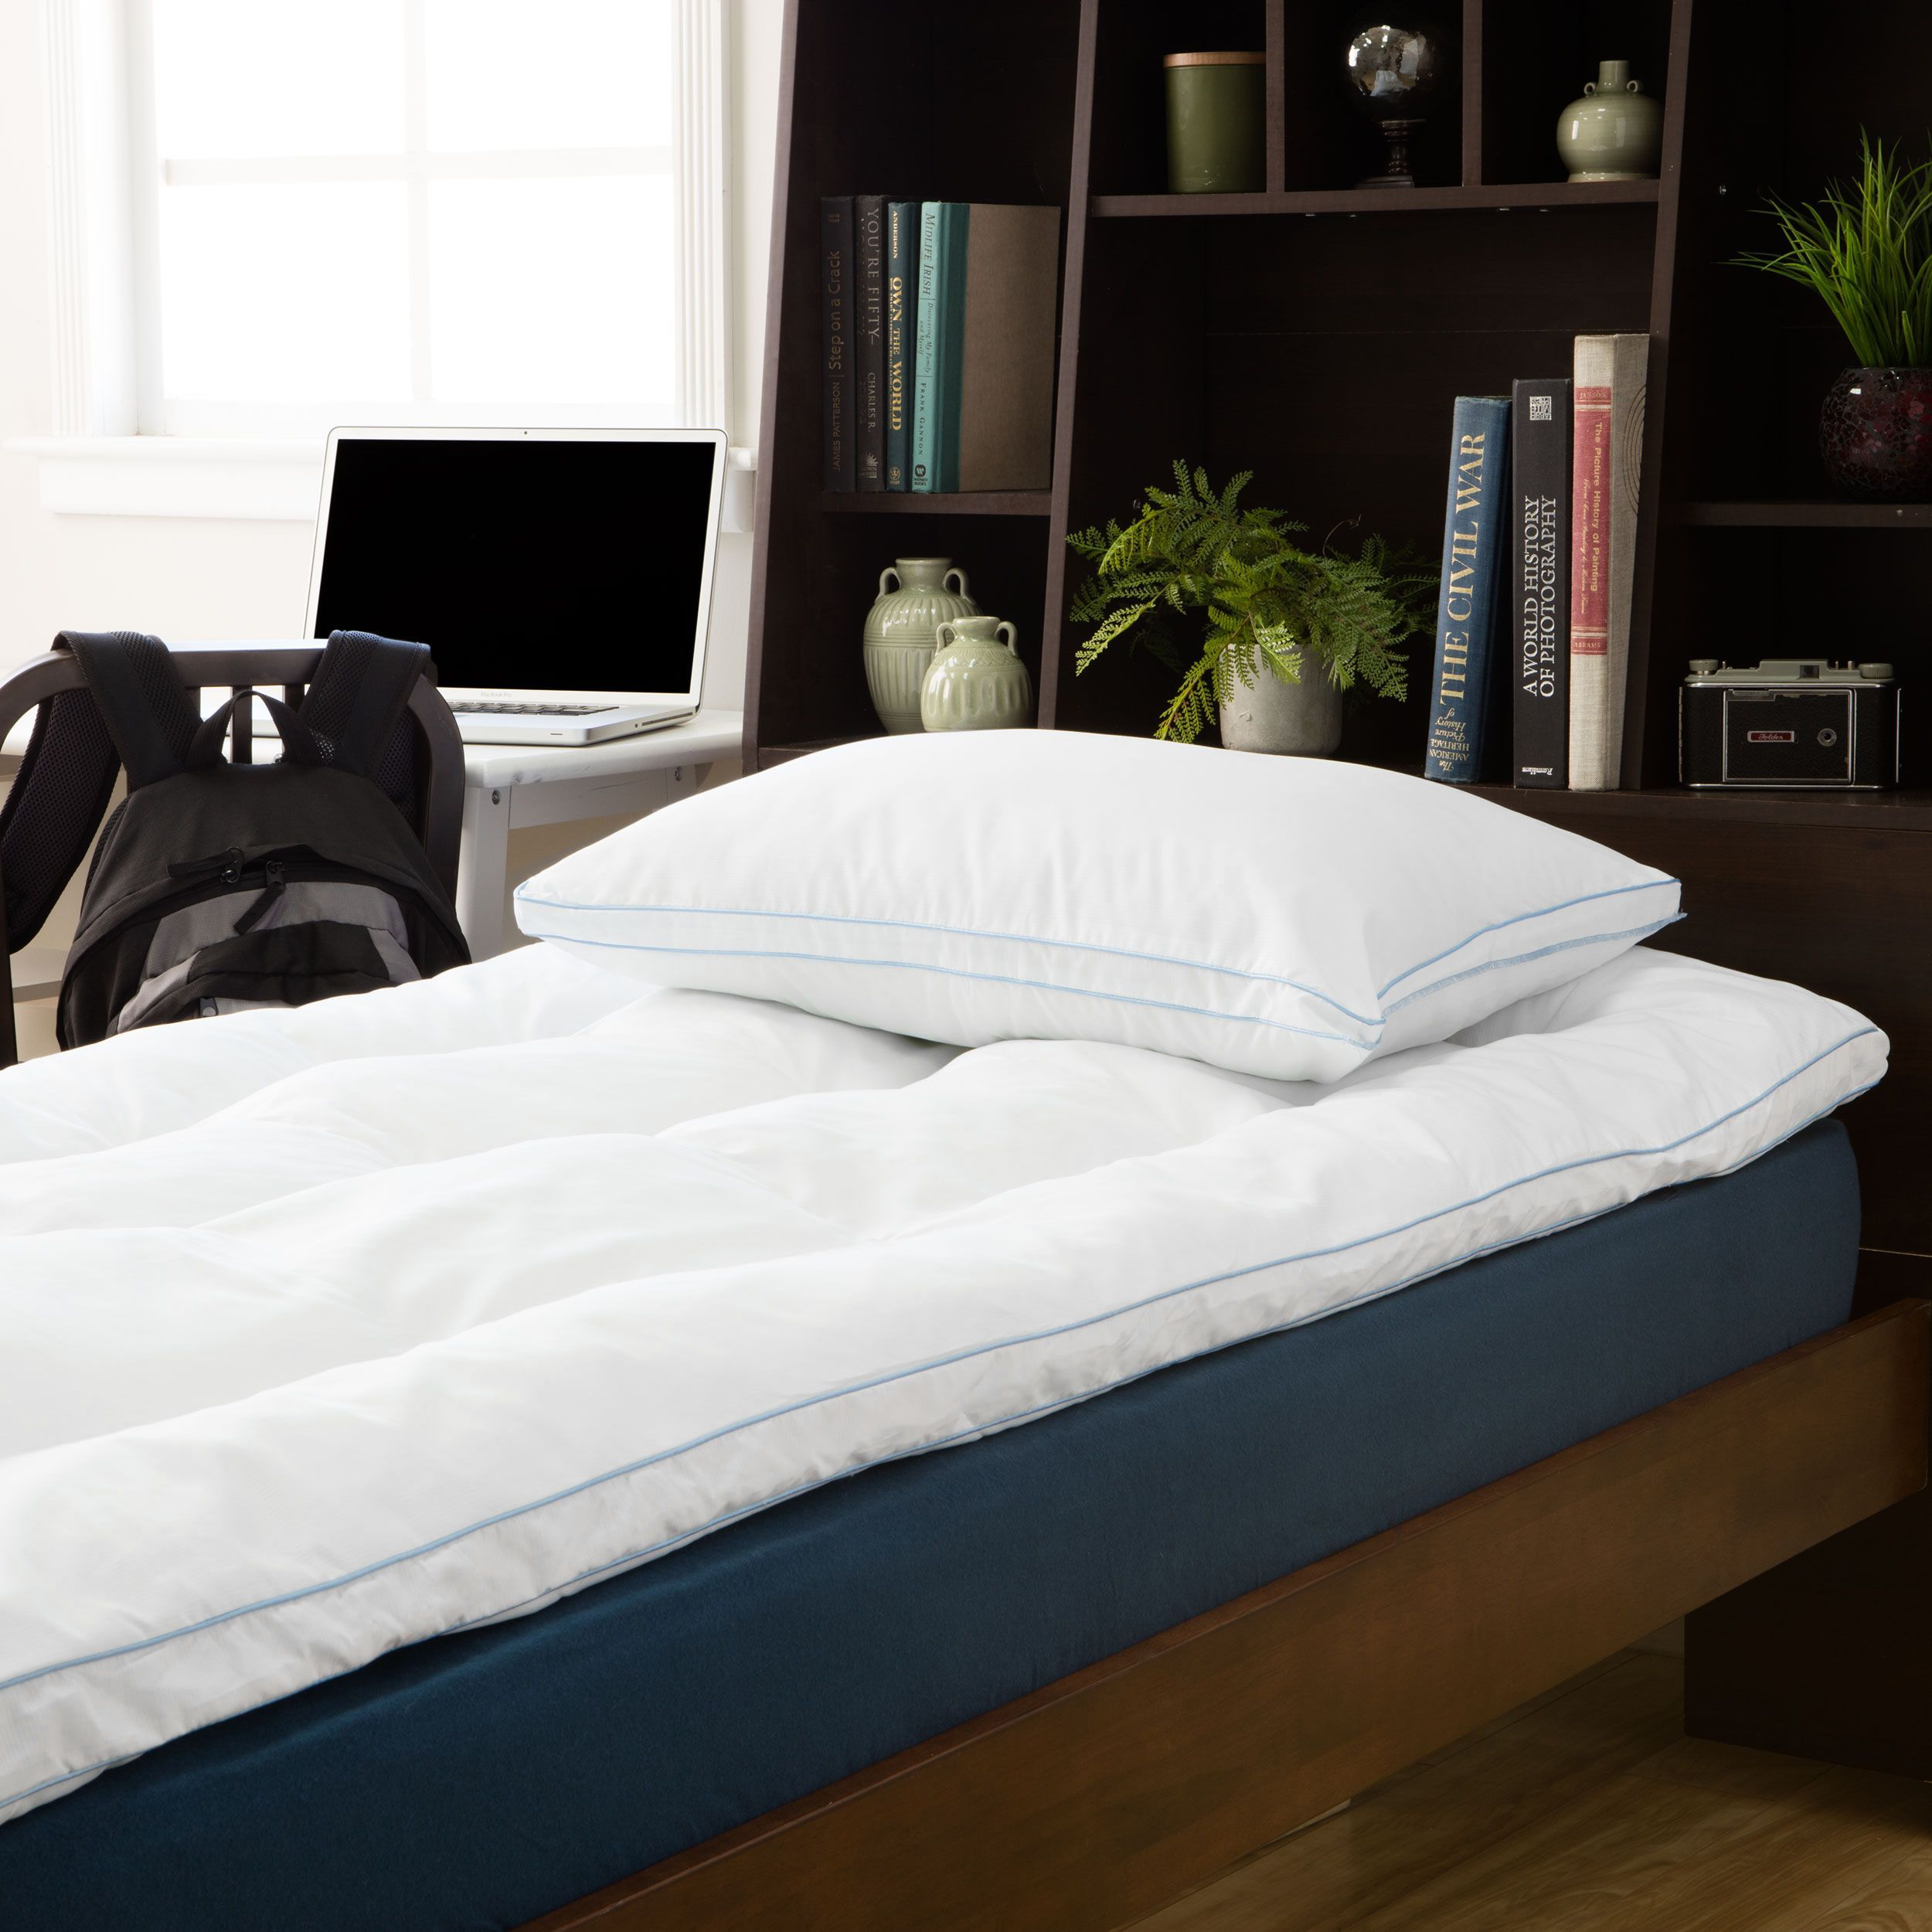 white balance cover dri protector boost pad triple tec cotton fitted unique twin inspirational mattress of misc pinterest bedgear